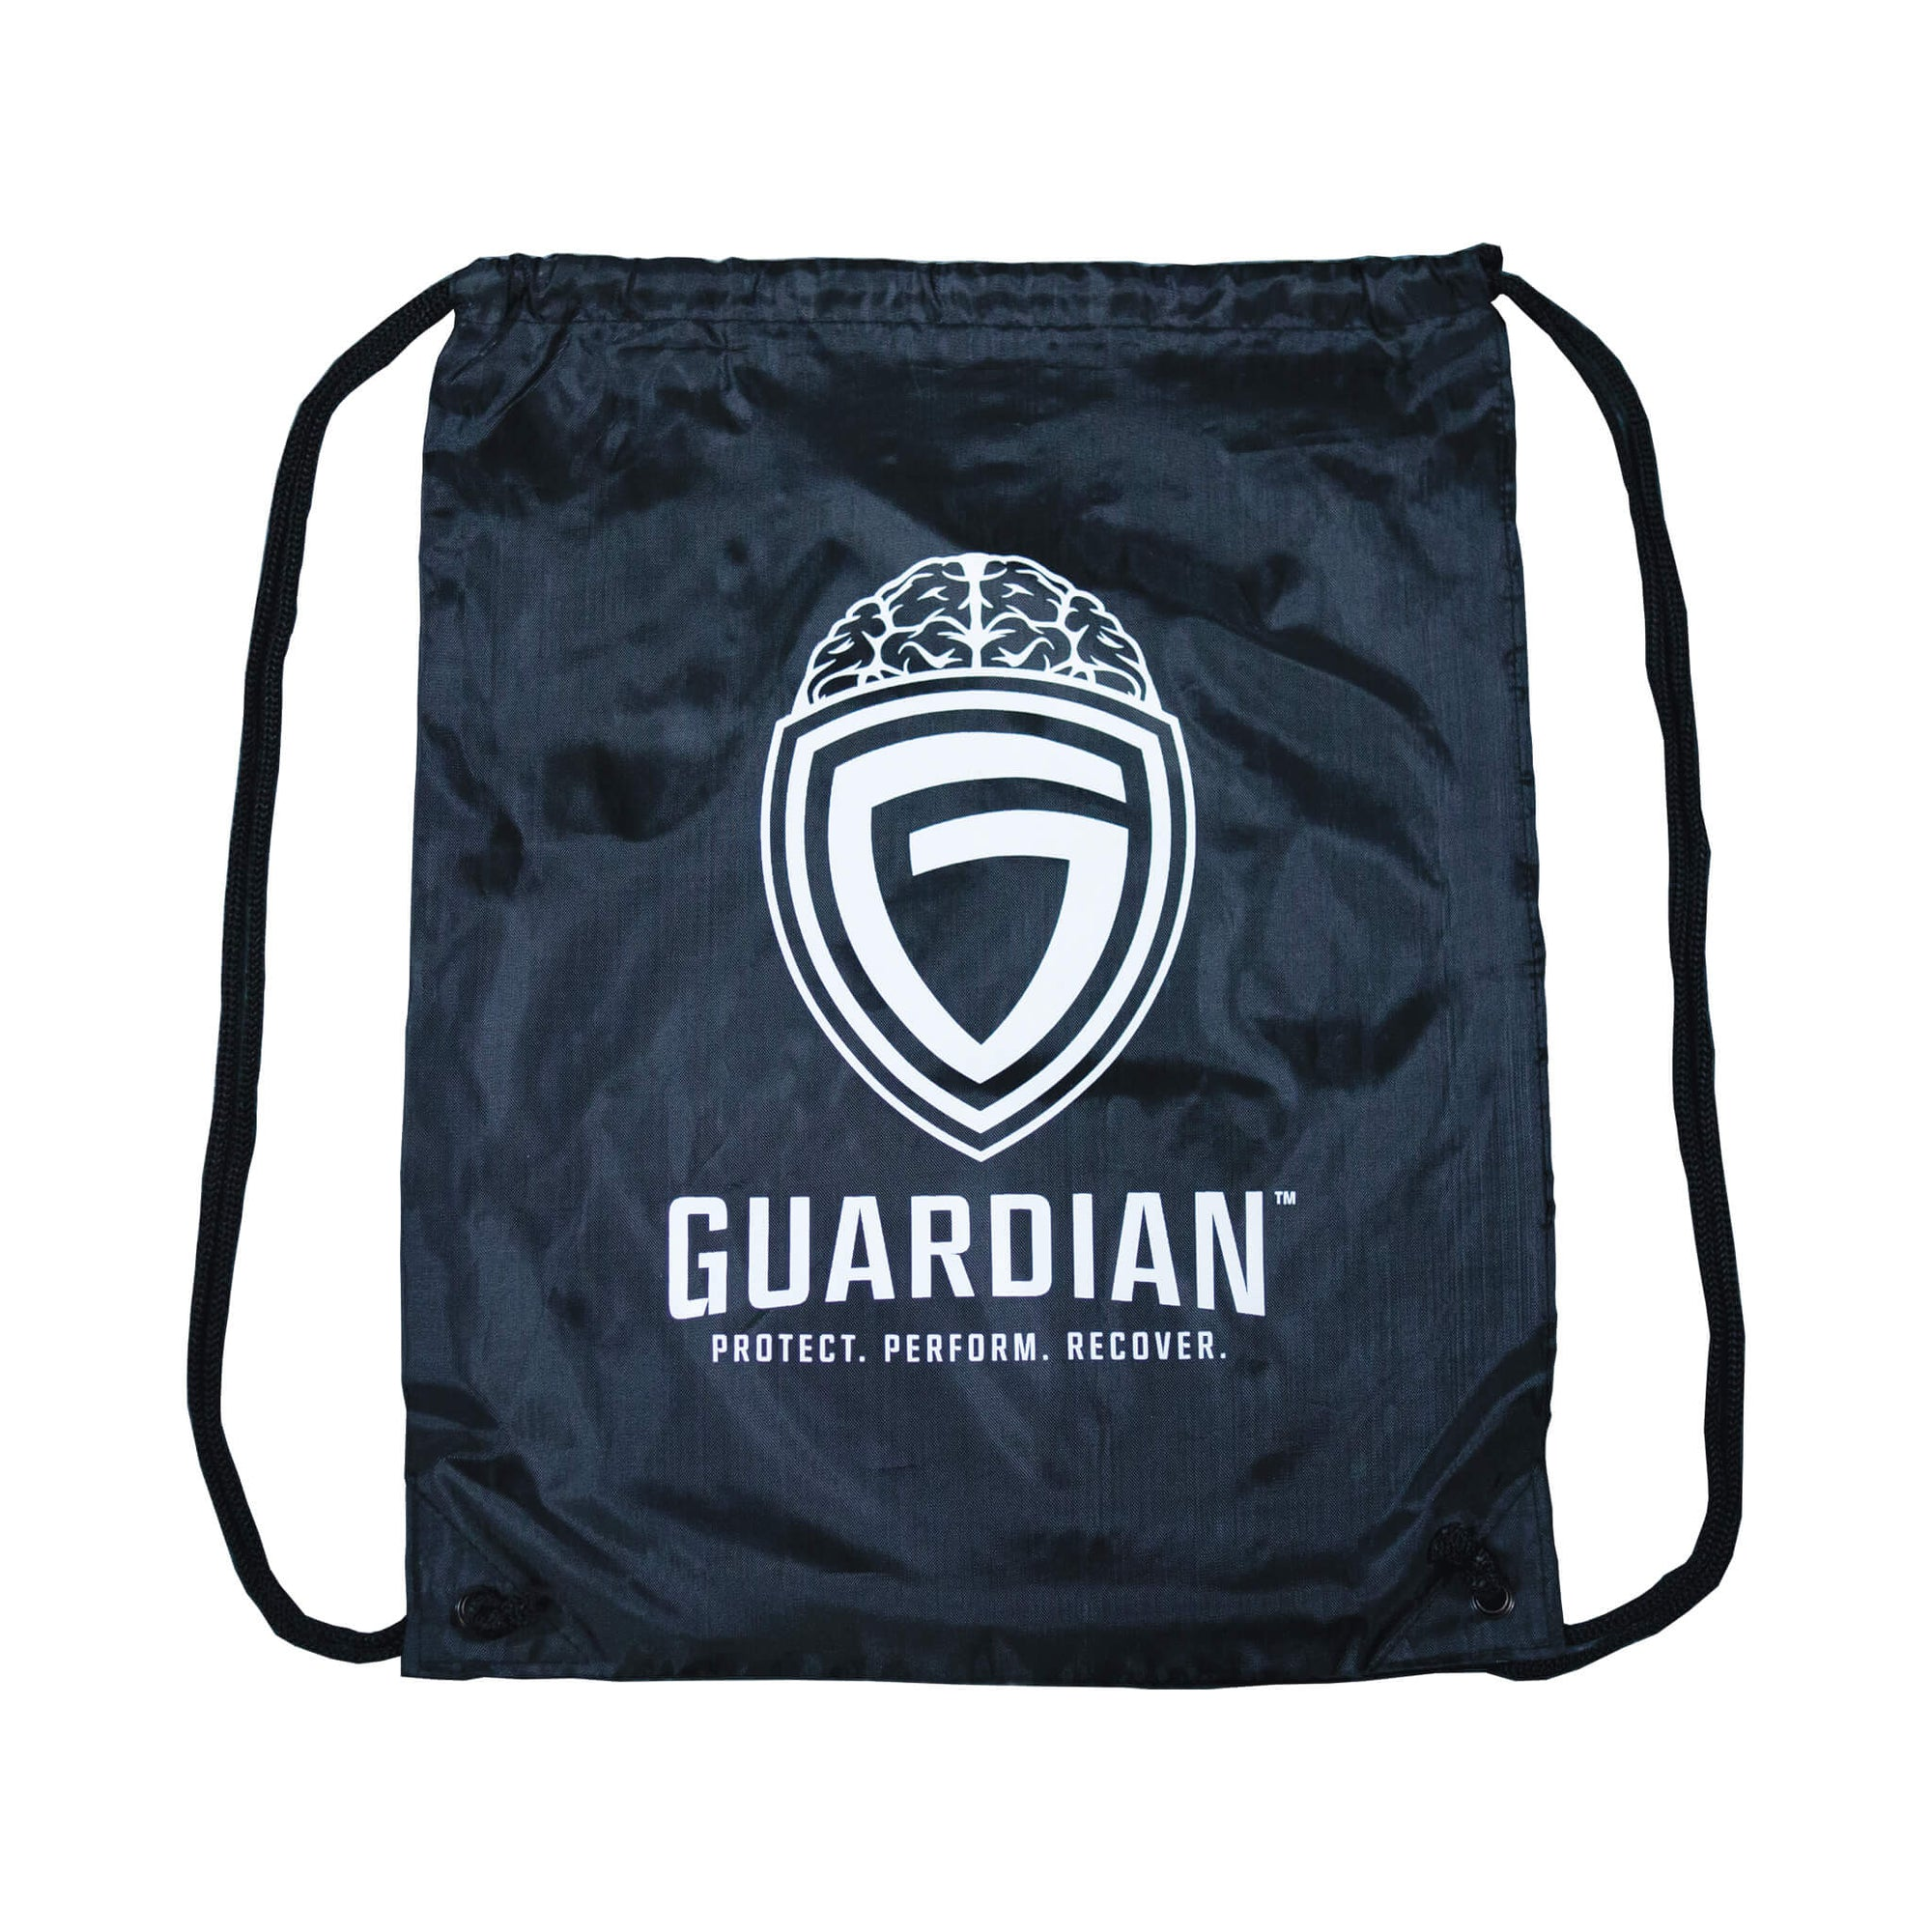 Guardian Drawstring Bag